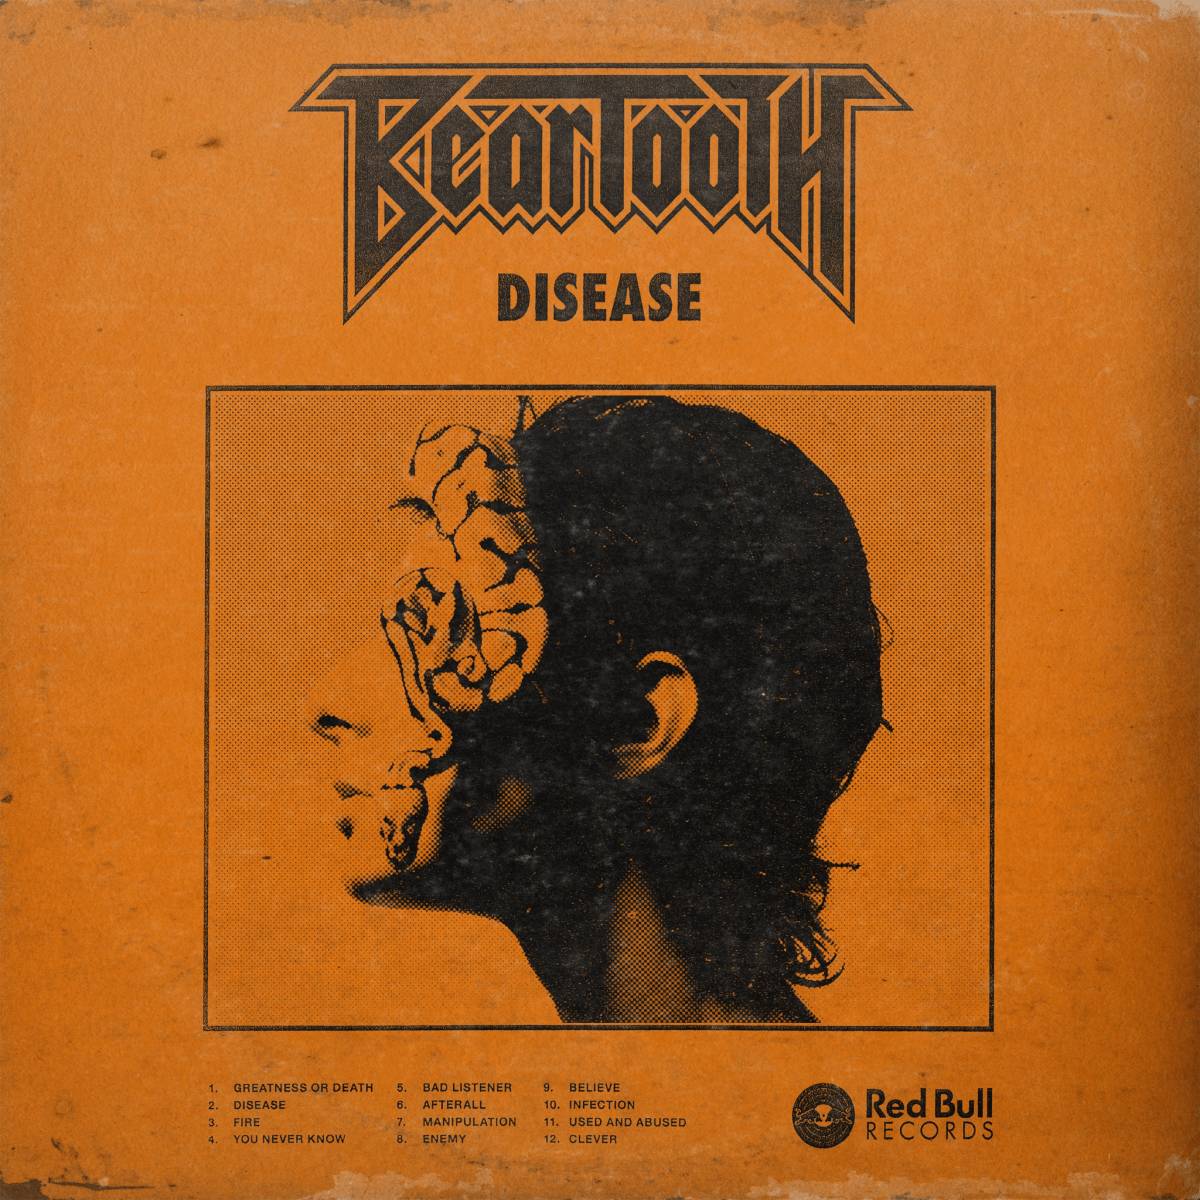 Beartooth - Disease (Album Review)